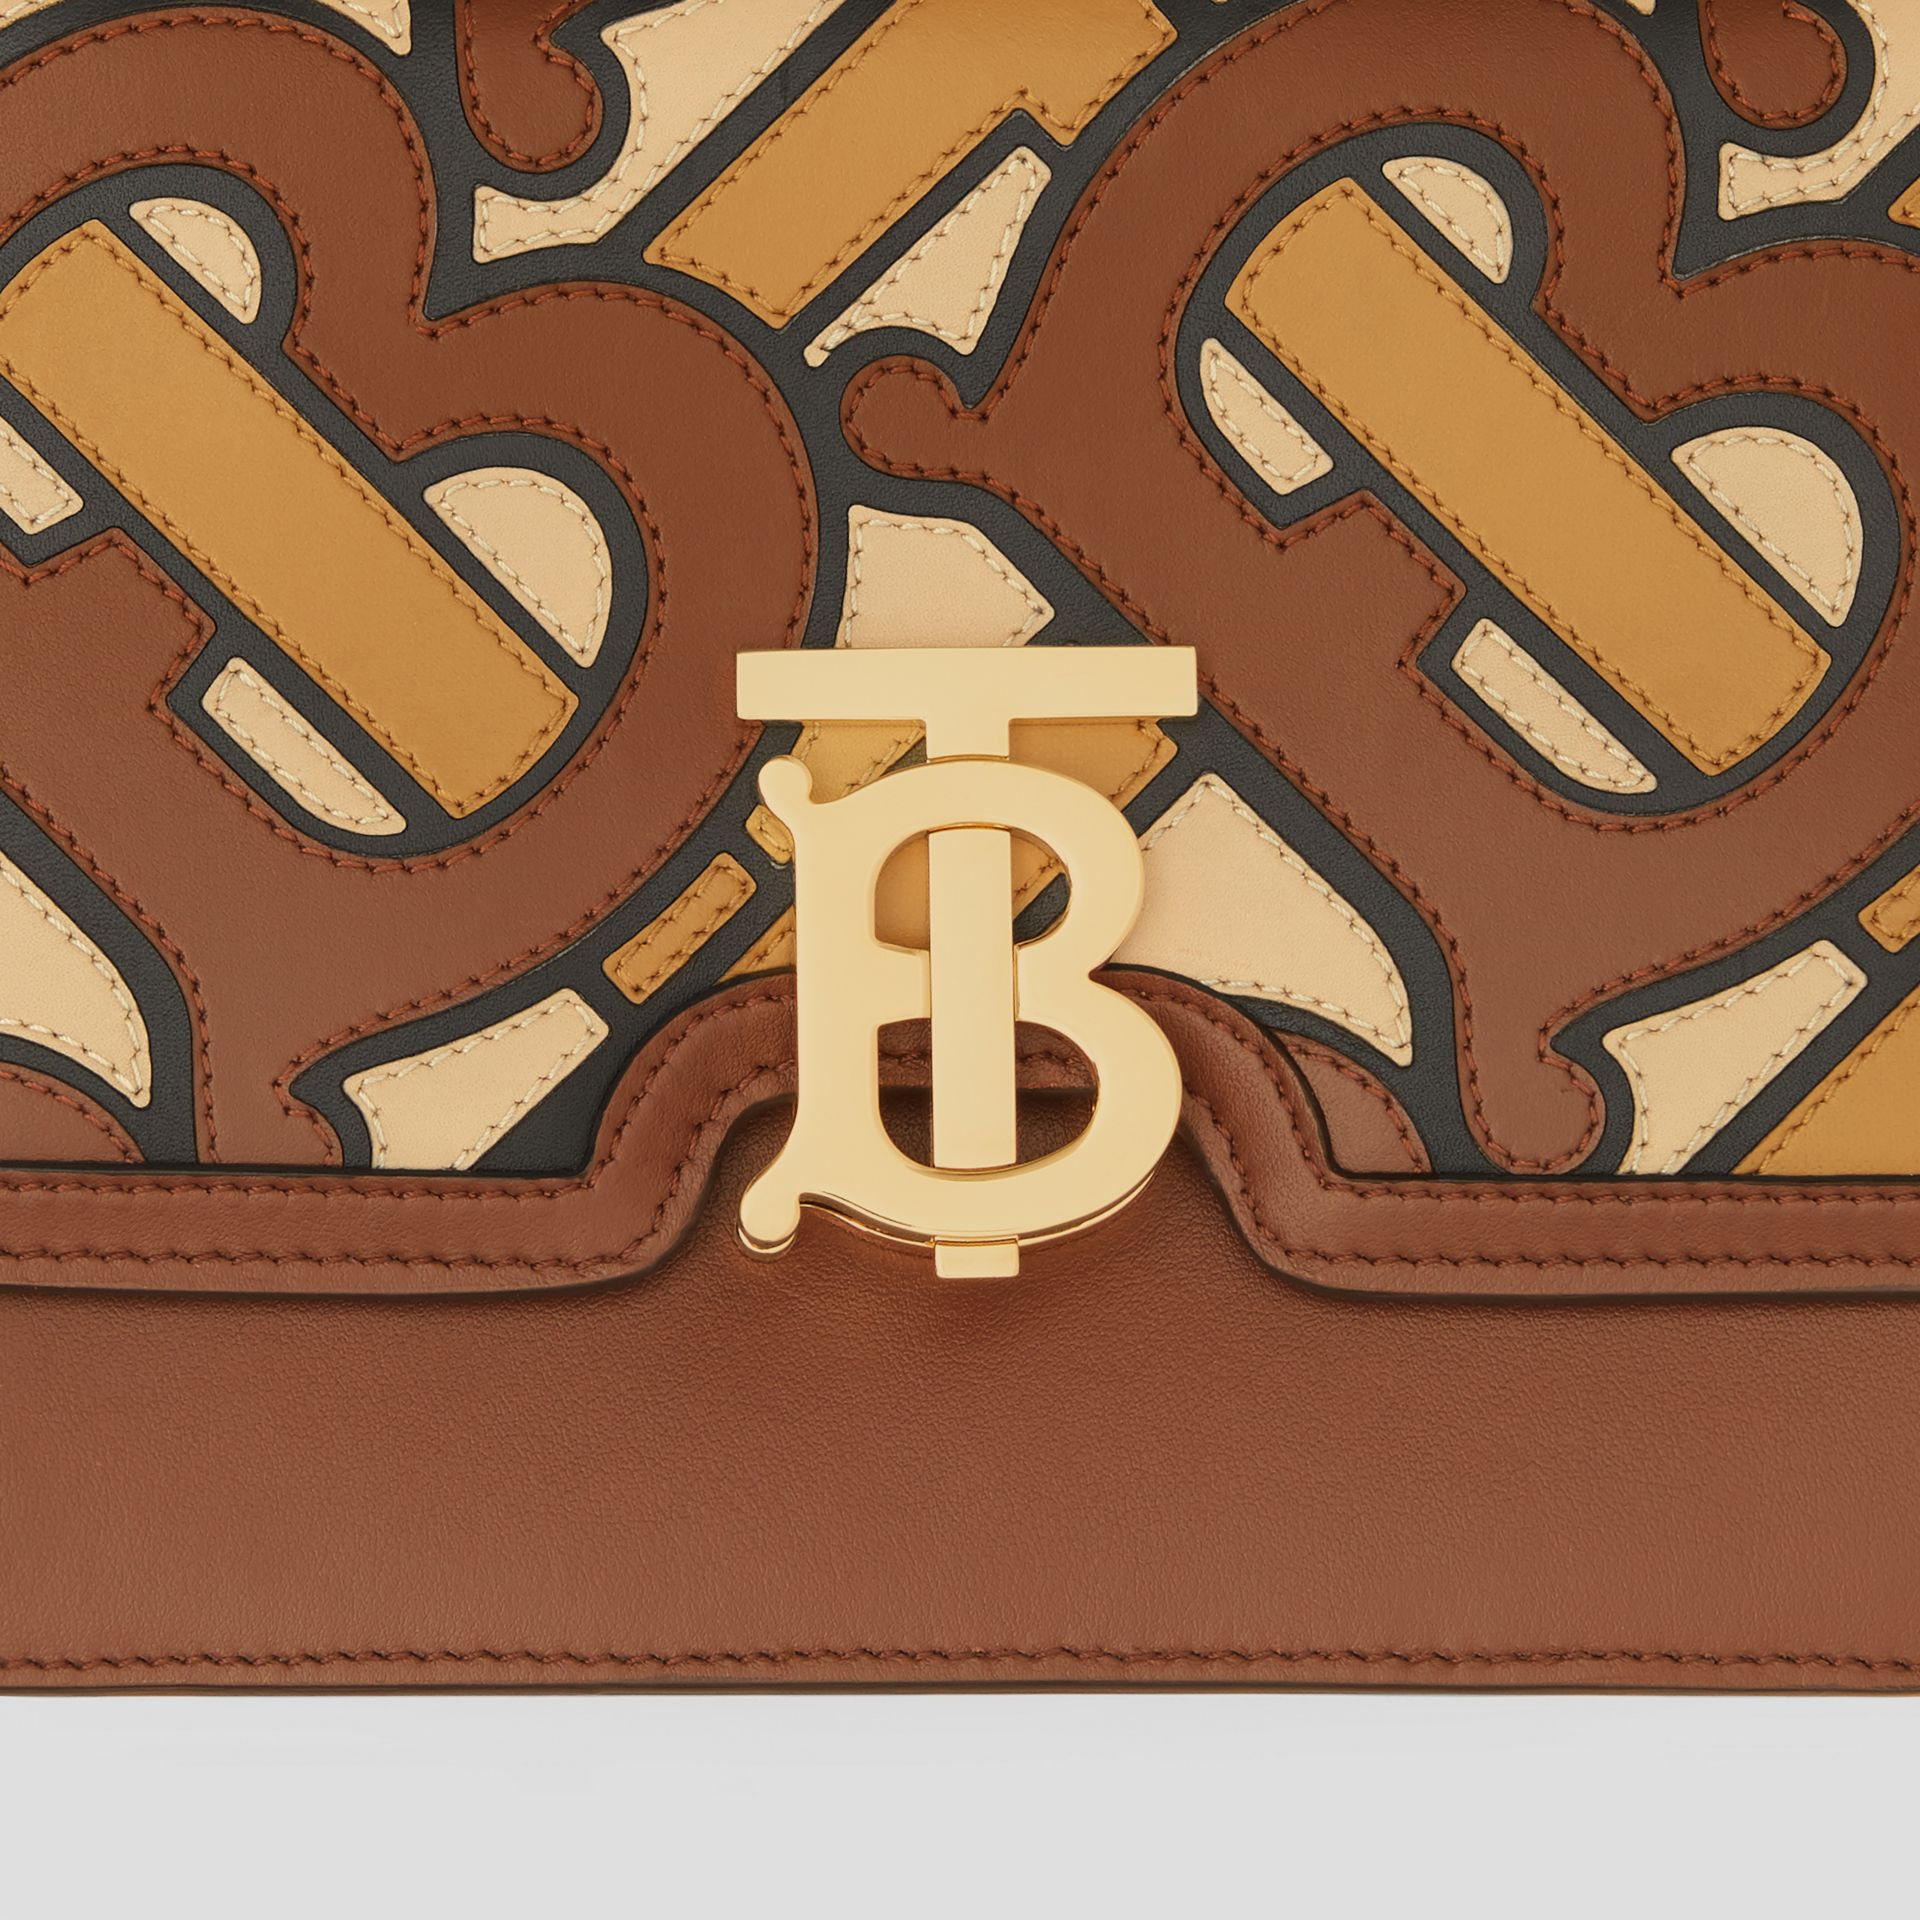 Small Monogram Appliqué Leather TB Bag in Brown - Women | Burberry - gallery image 1